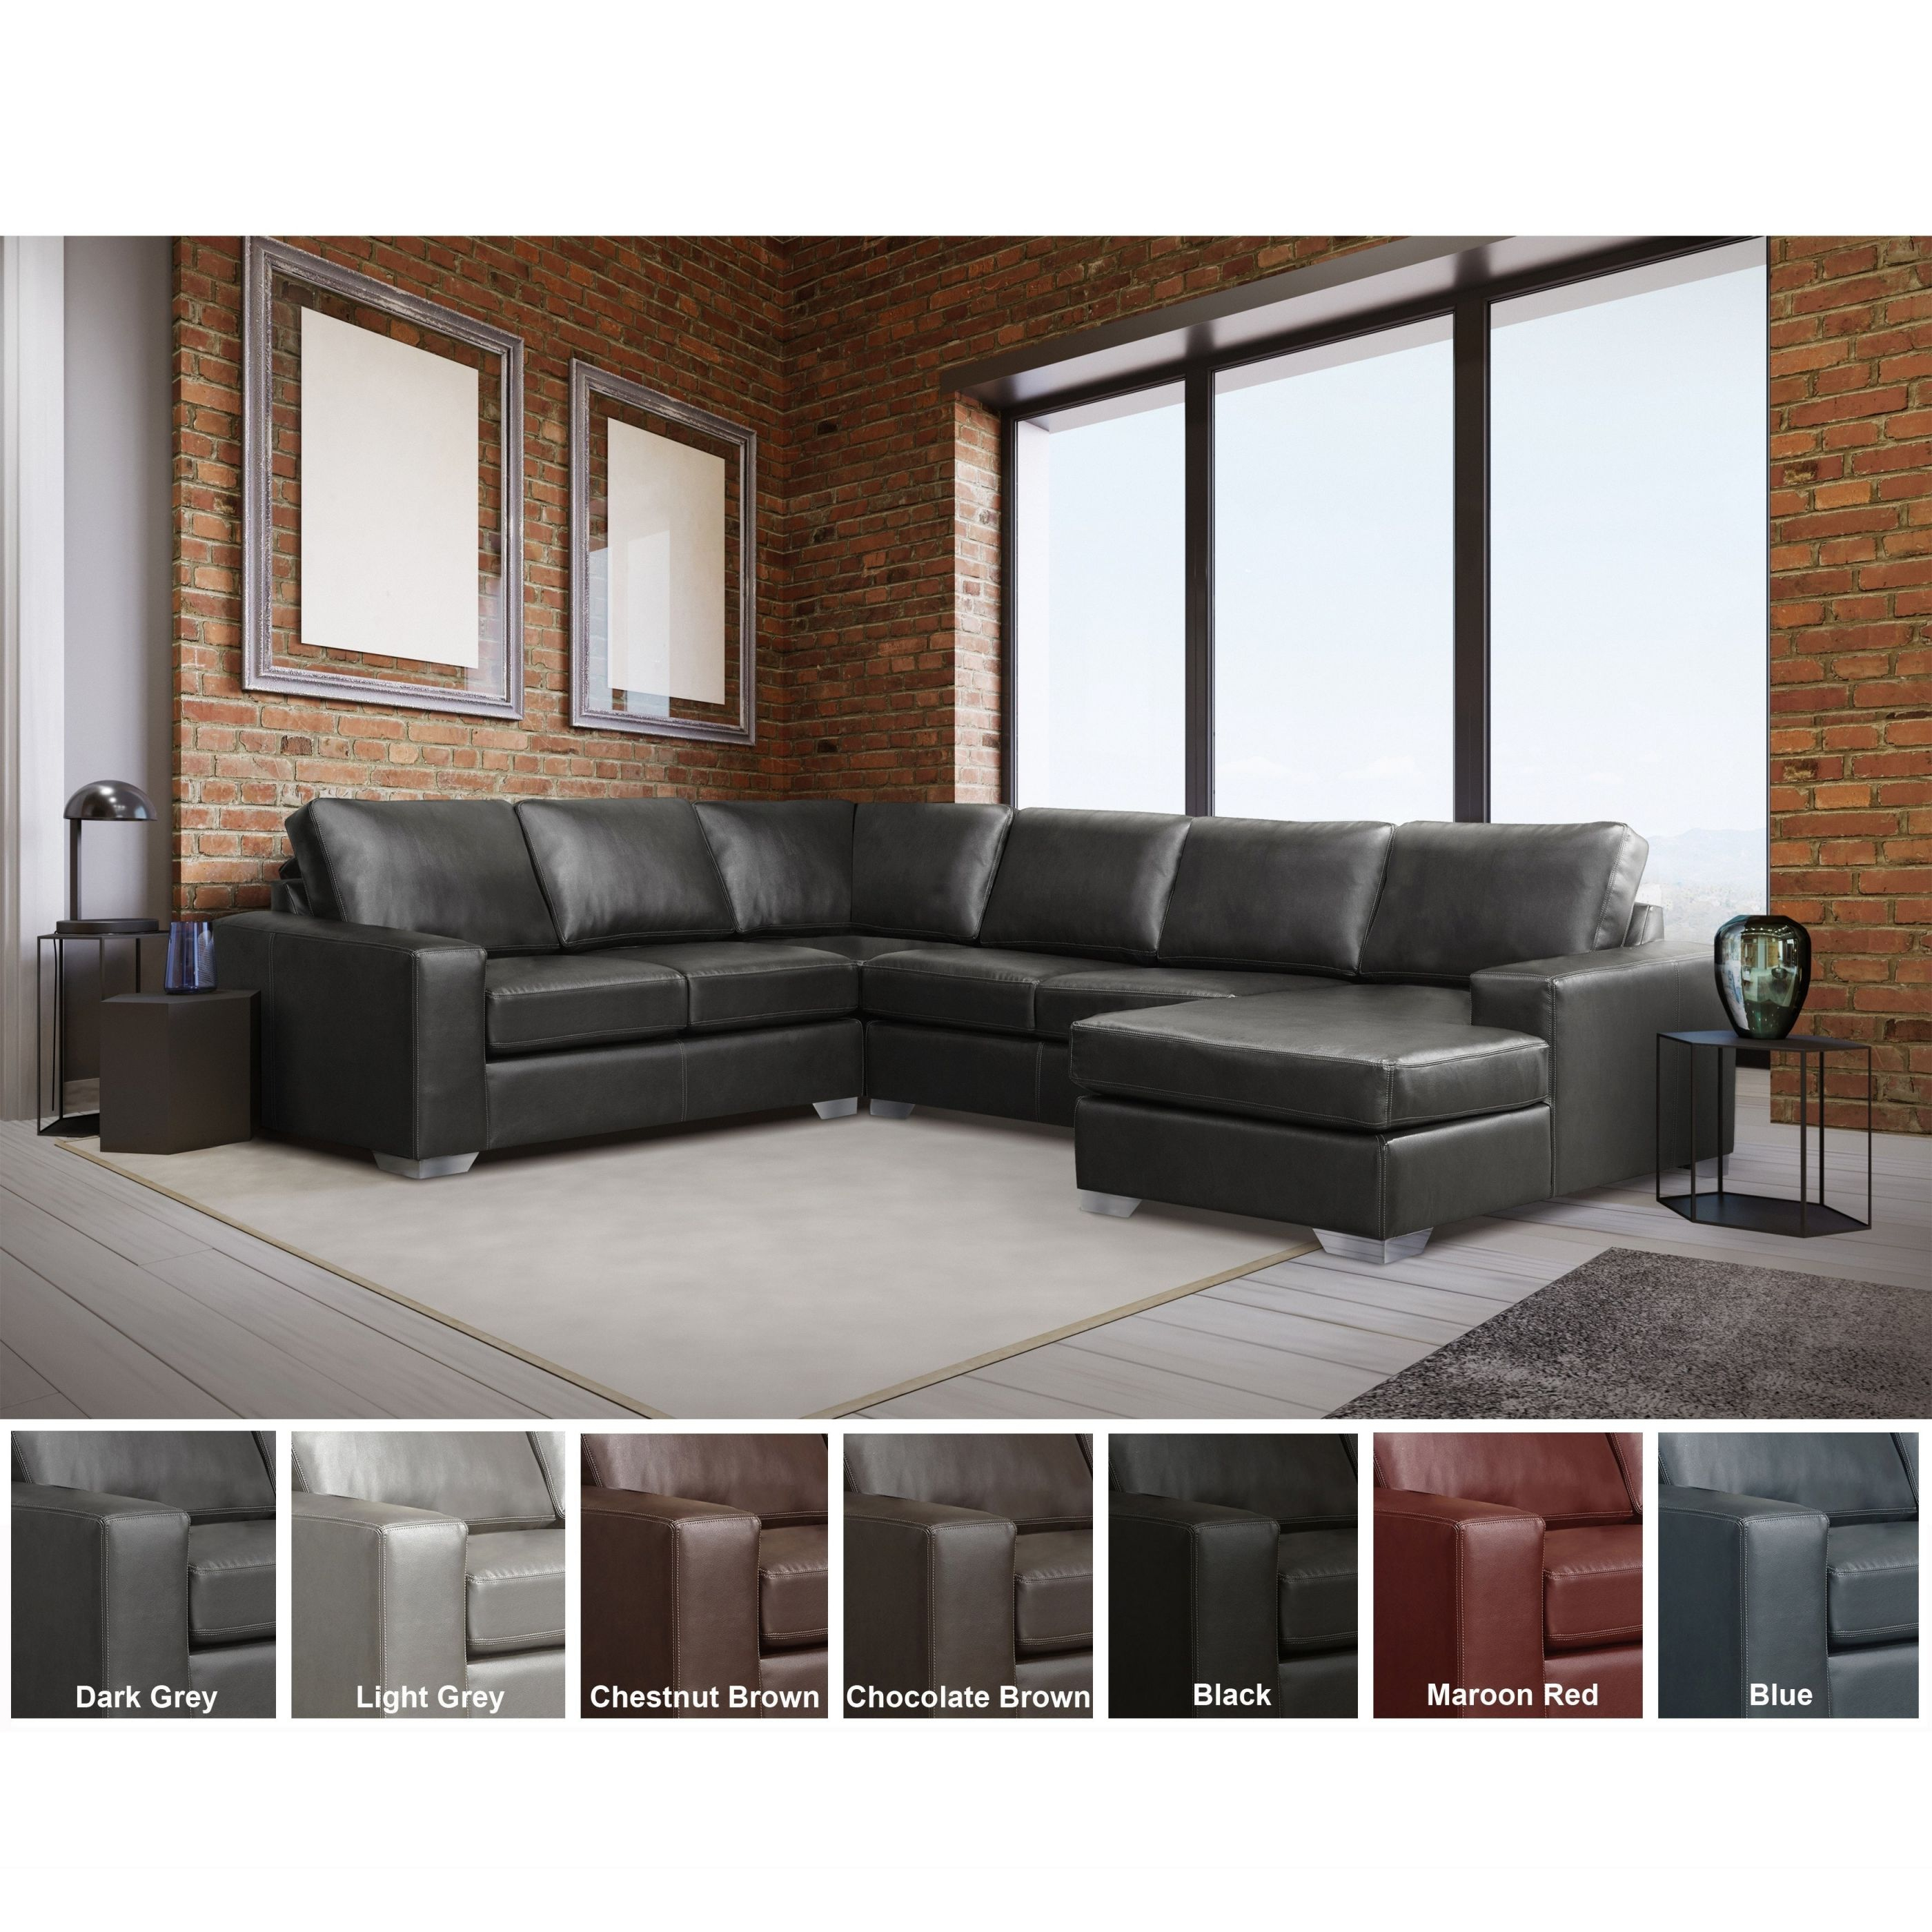 Mitchell Modern Premium Top Grain Italian Leather Sectional Sofa with Leather Sectional Modern